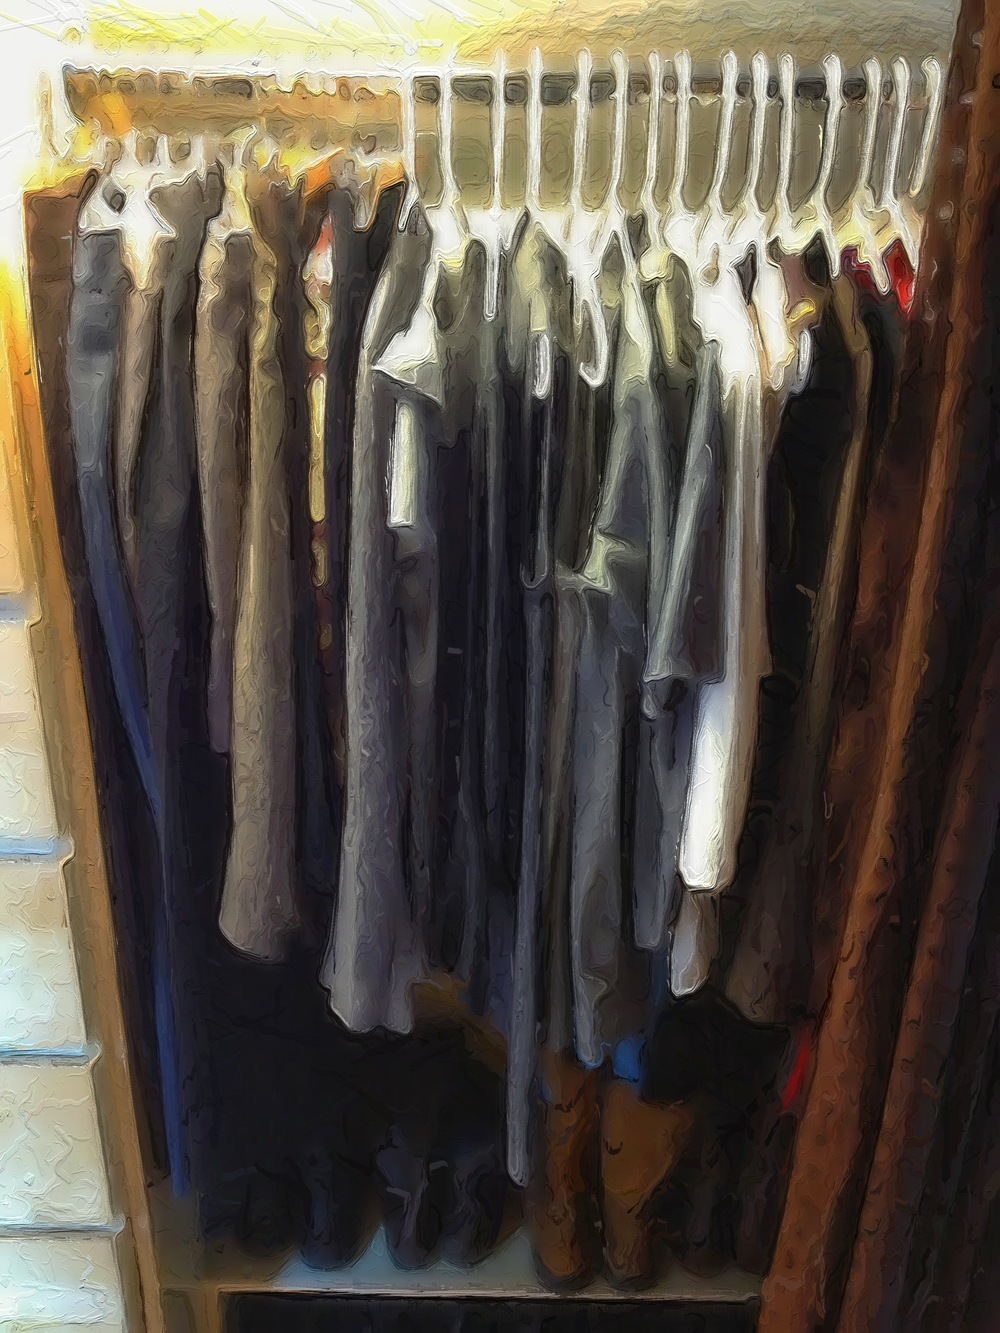 My pared down closet. Do I need an OCD intervention?